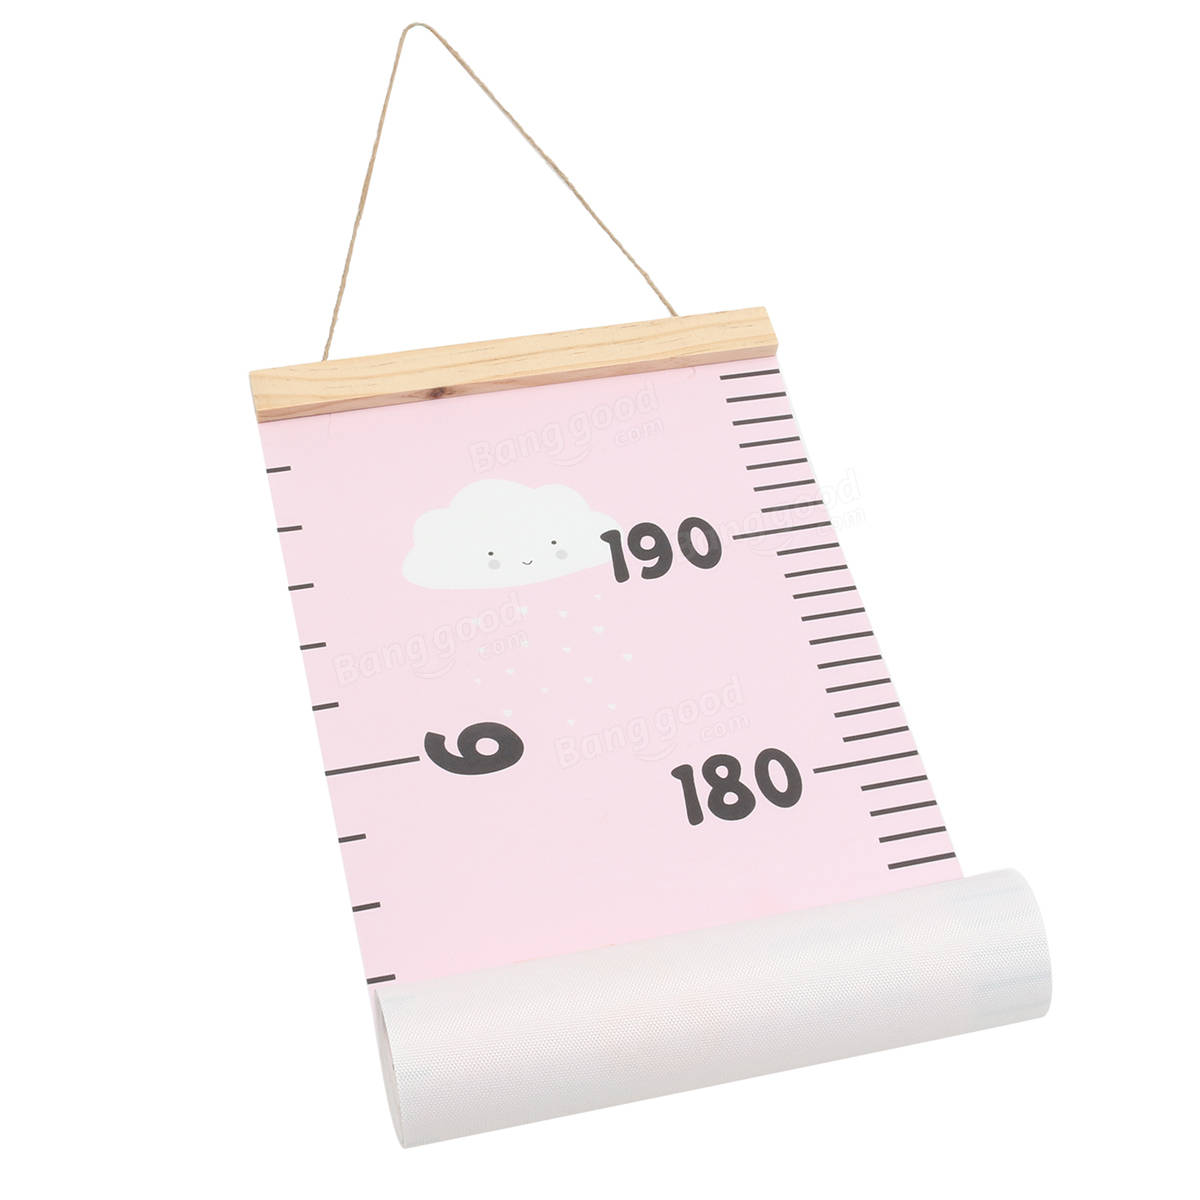 New wall hanging height measure ruler kids growth chart children wall hanging height measure ruler kids growth chart children room decoration geenschuldenfo Image collections